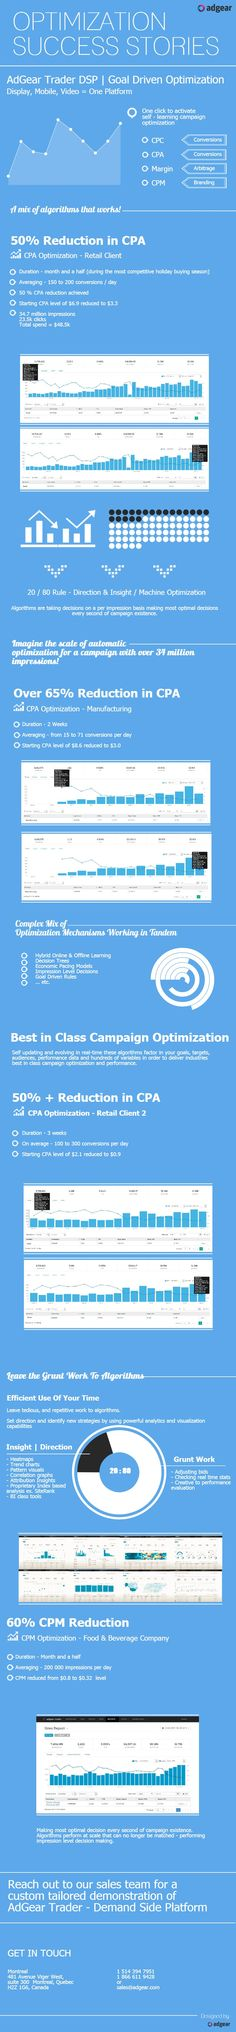 AdGear - Optimization Success Stories | Created in #free @Piktochart #Infographic Editor at www.piktochart.com